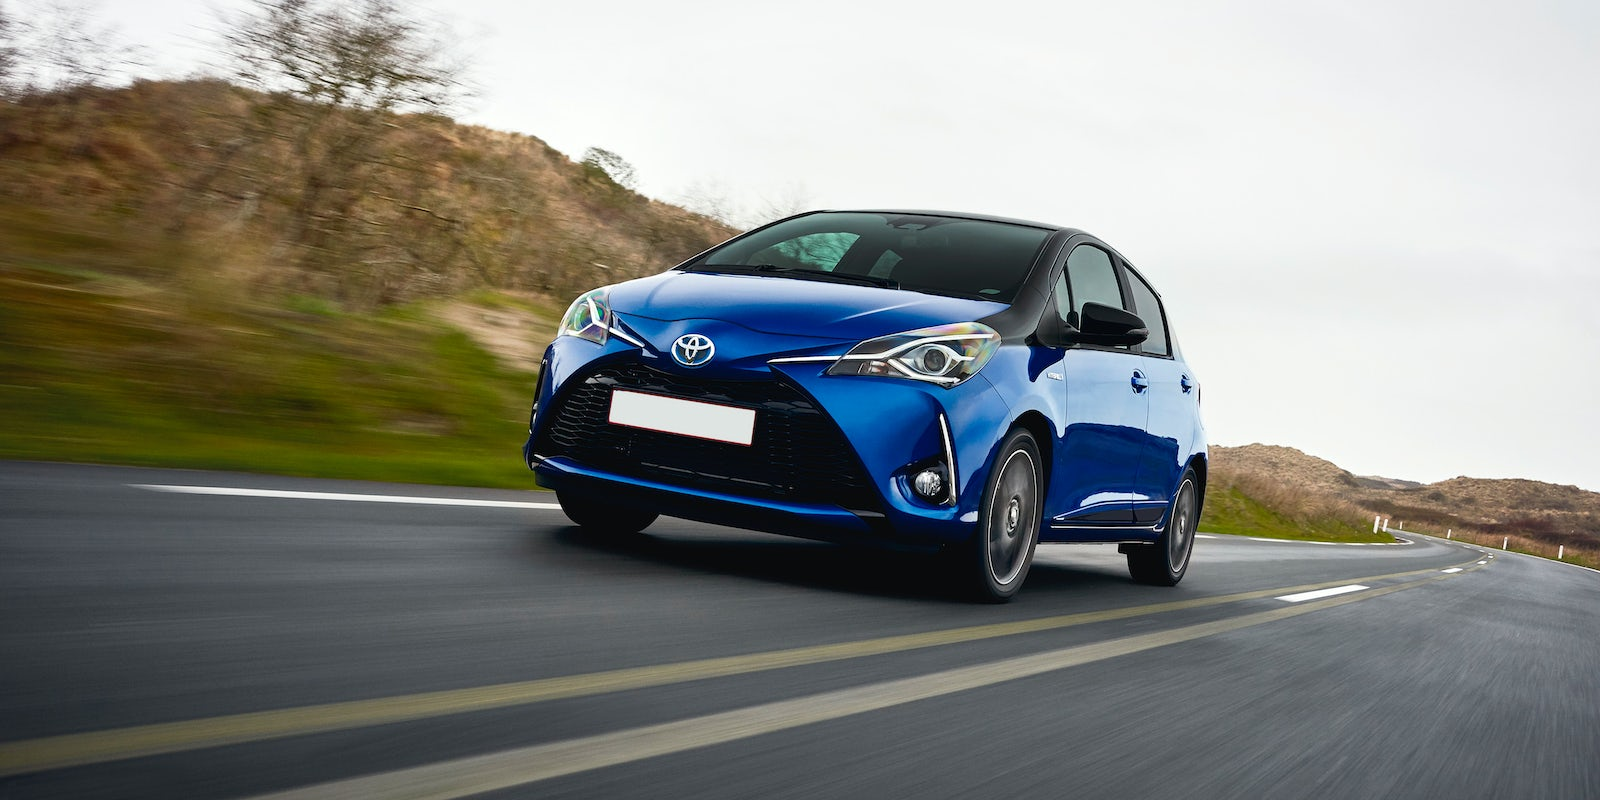 Images Of Small Family Car Toyota Yaris As Good Info For You